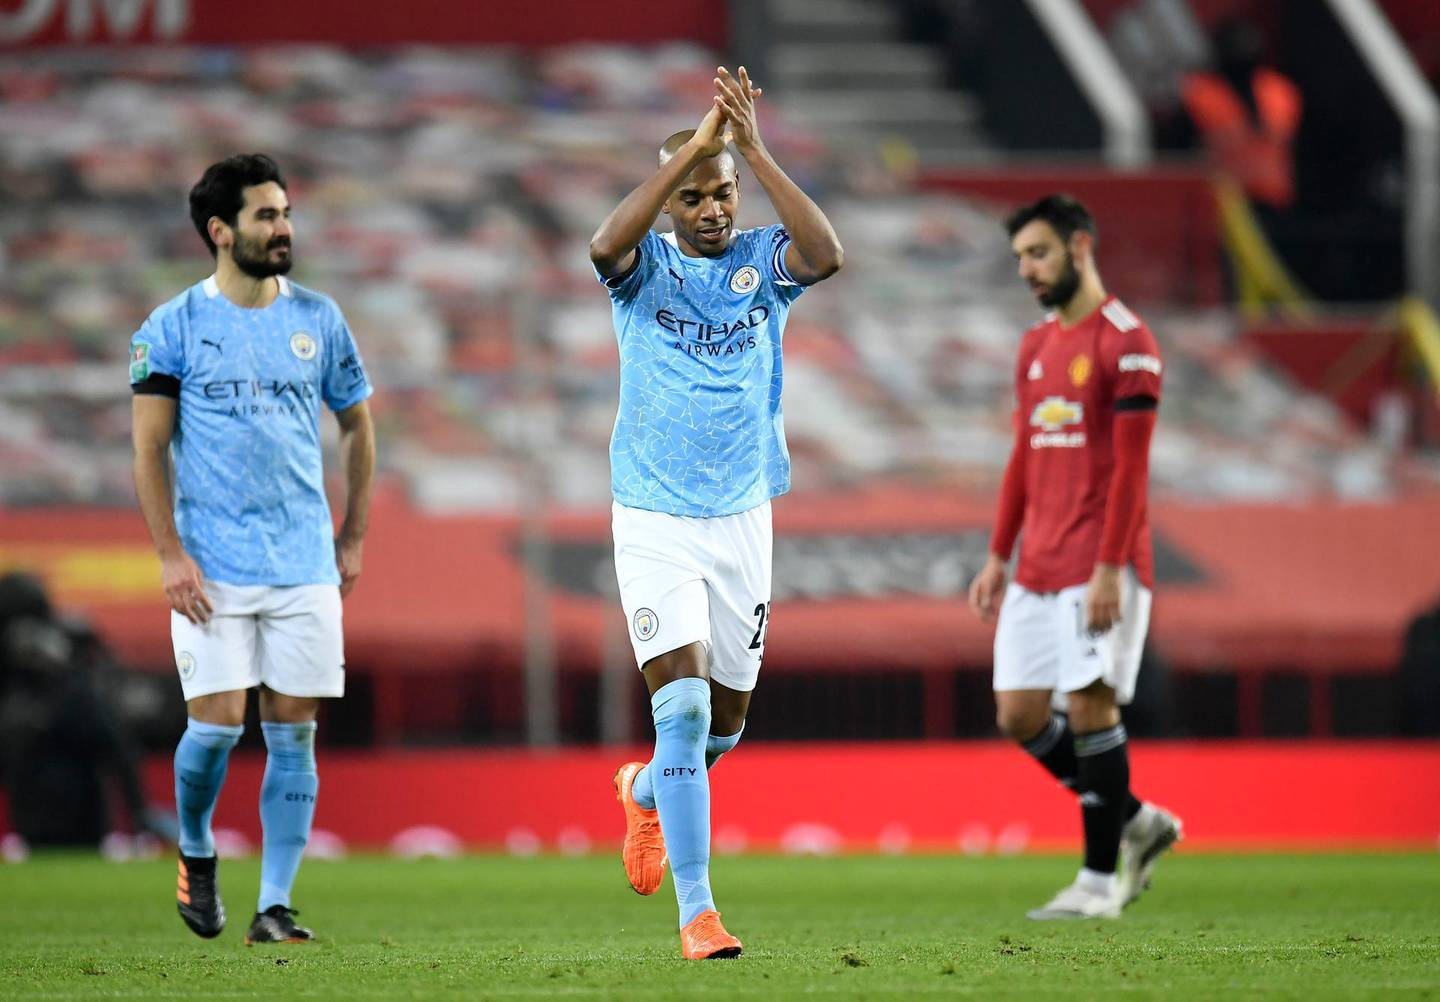 """Manchester City's Fernandinho celebrates after scoring his side's second goal of the game during the Carabao Cup Semi-Final match at Old Trafford, Manchester. PA Photo. Picture date: Wednesday January 6, 2021. See PA story SOCCER Man Utd. Photo credit should read: Peter Powell/PA Wire. RESTRICTIONS: EDITORIAL USE ONLY No use with unauthorised audio, video, data, fixture lists, club/league logos or """"live"""" services. Online in-match use limited to 120 images, no video emulation. No use in betting, games or single club/league/player publications."""